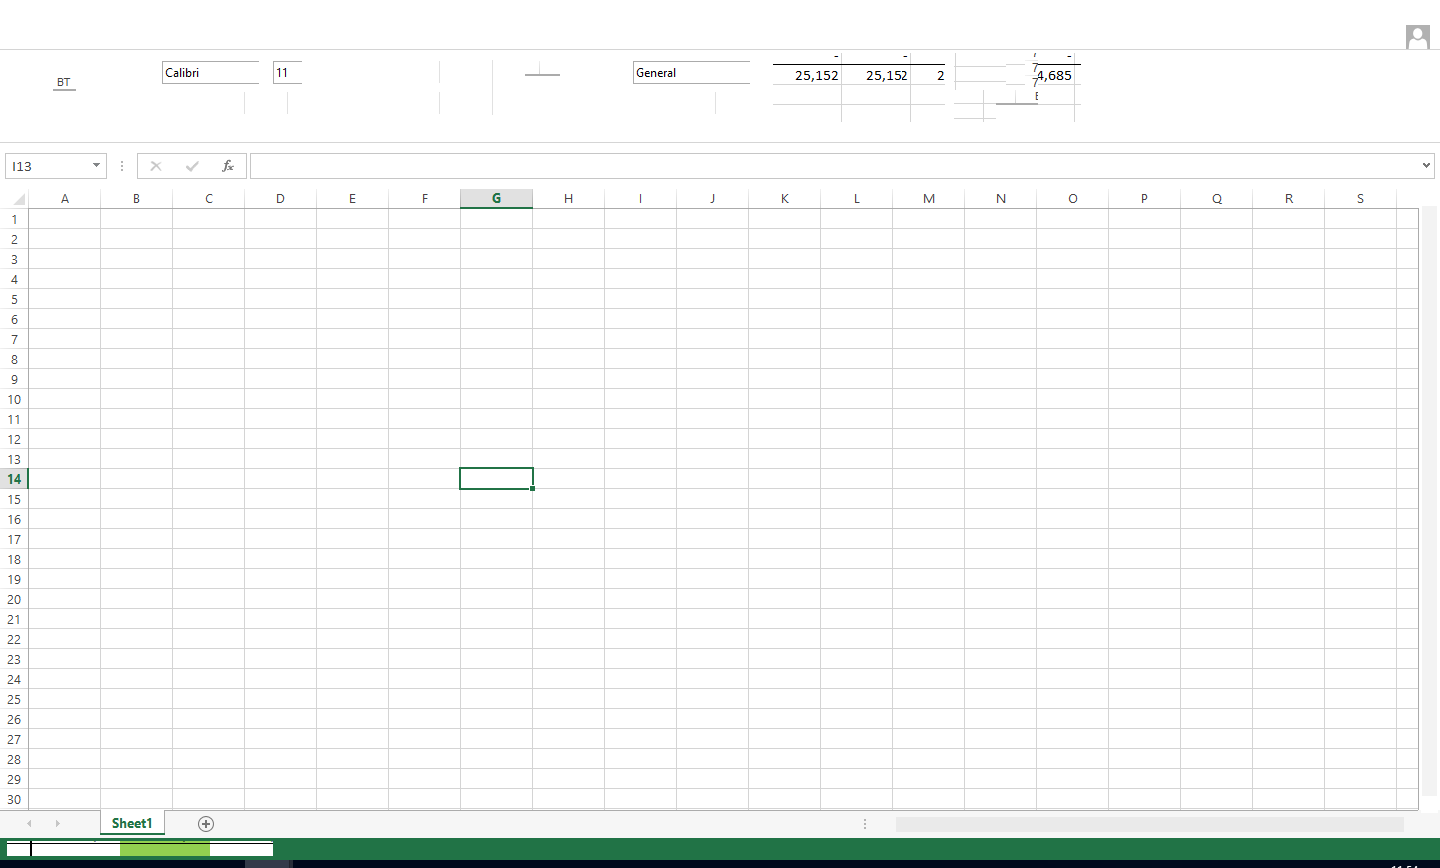 Workbooks excel.workbooks.open : Options in Microsoft excel 2013 disappear on some workbooks